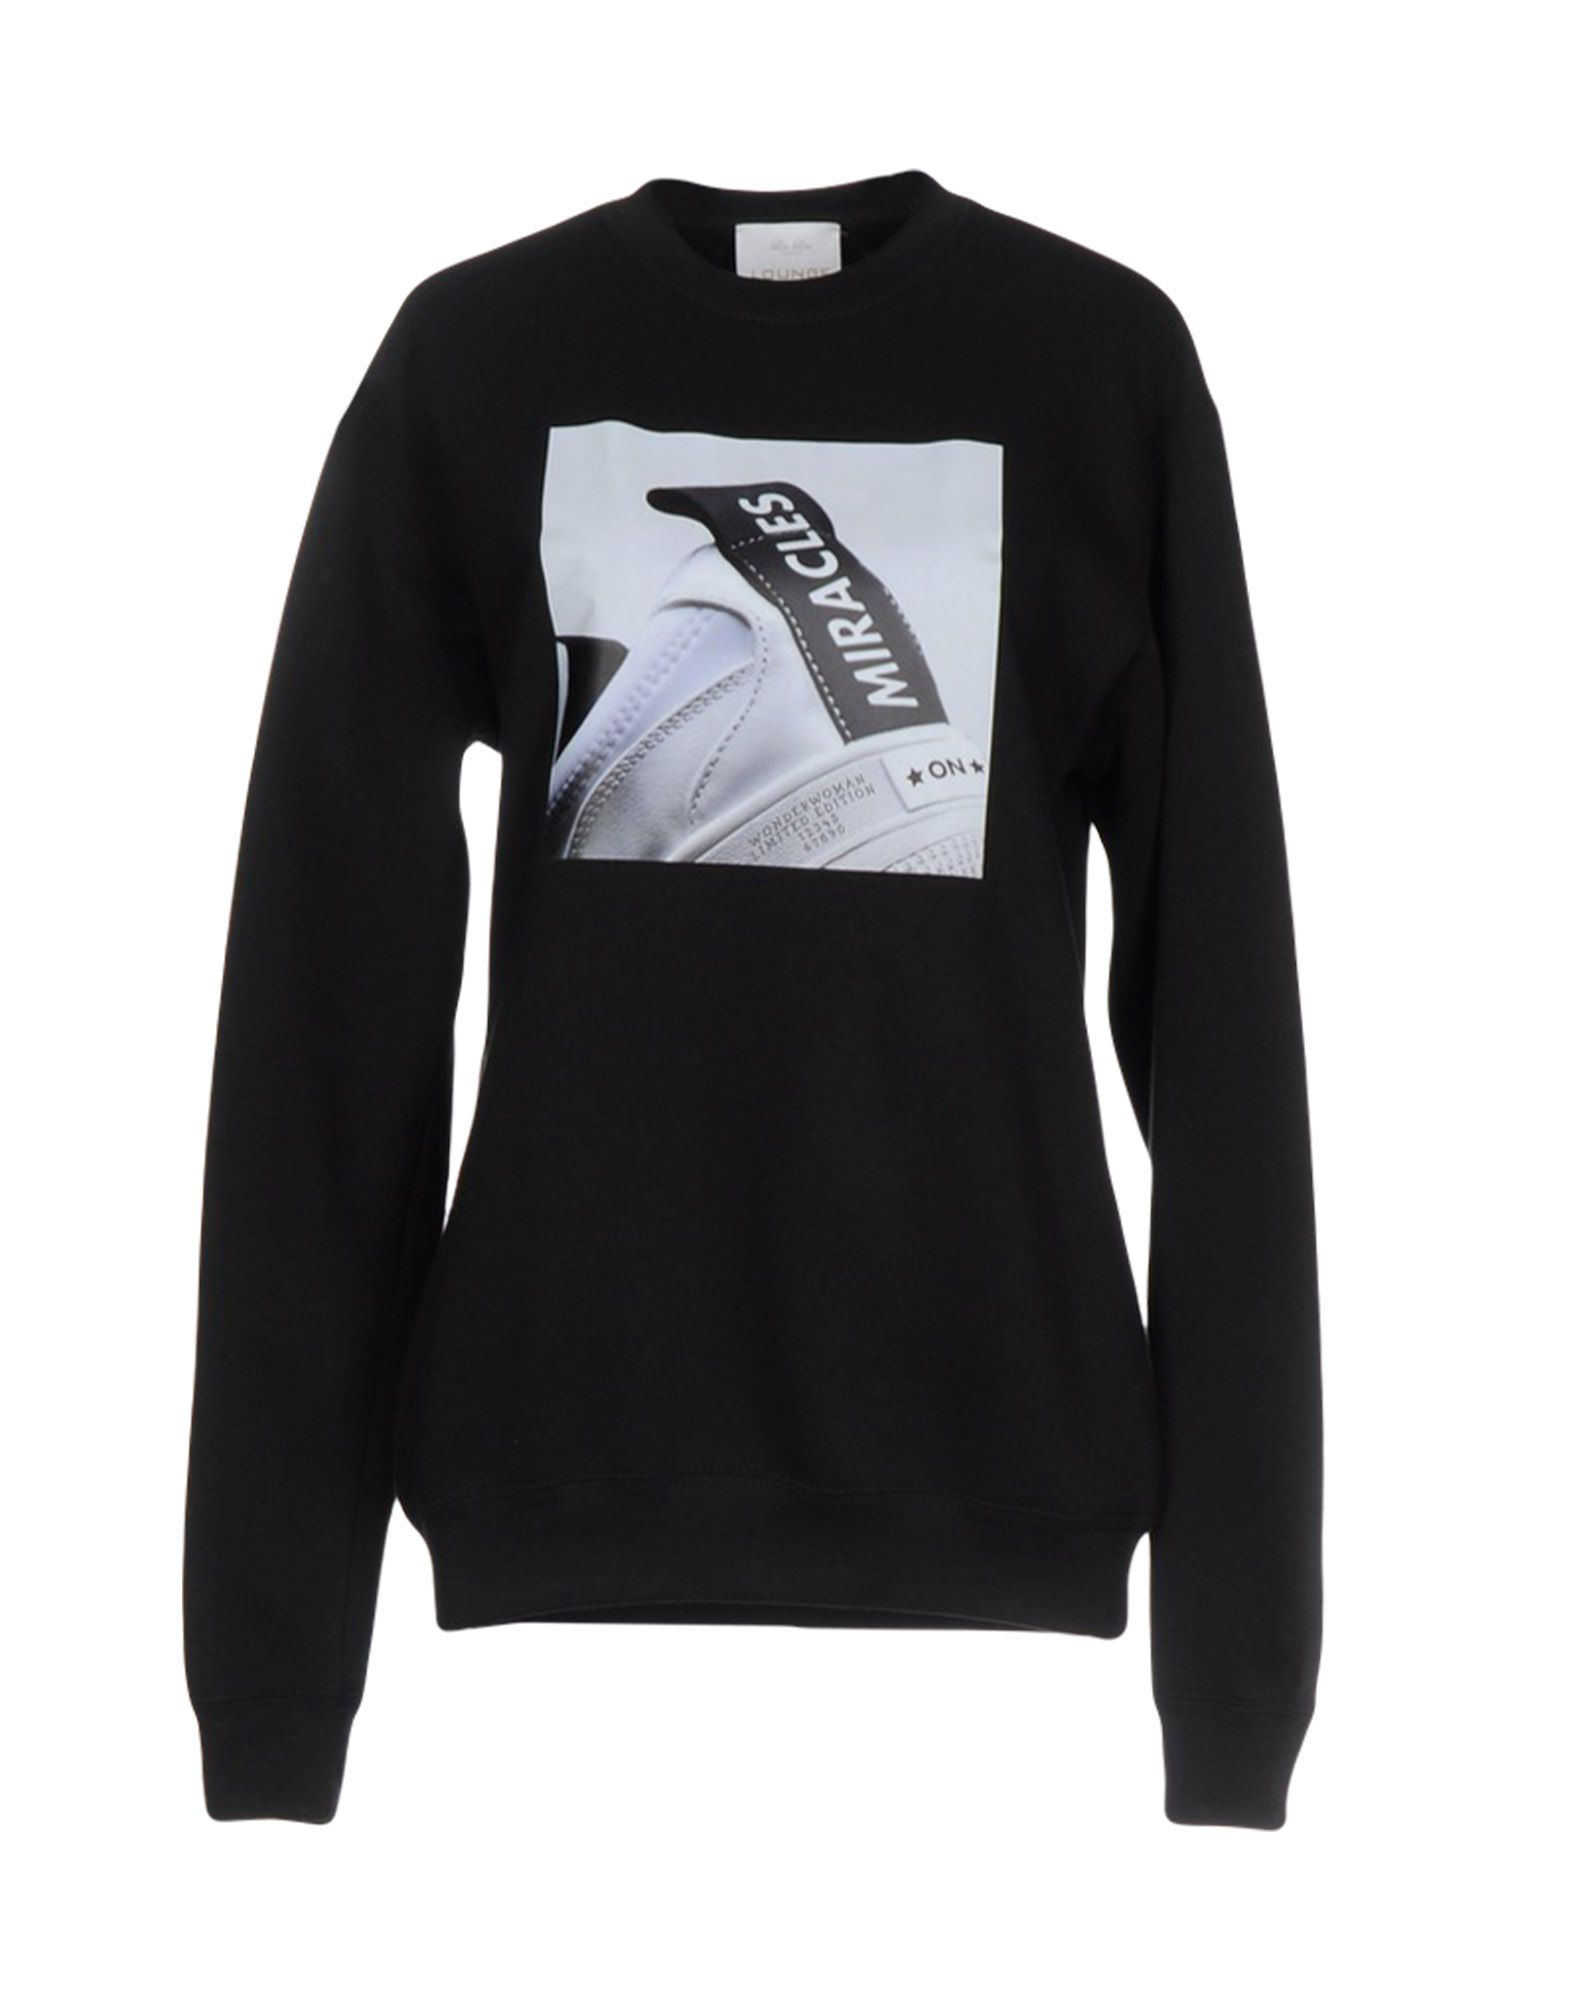 Lou Lou London Sweatshirts